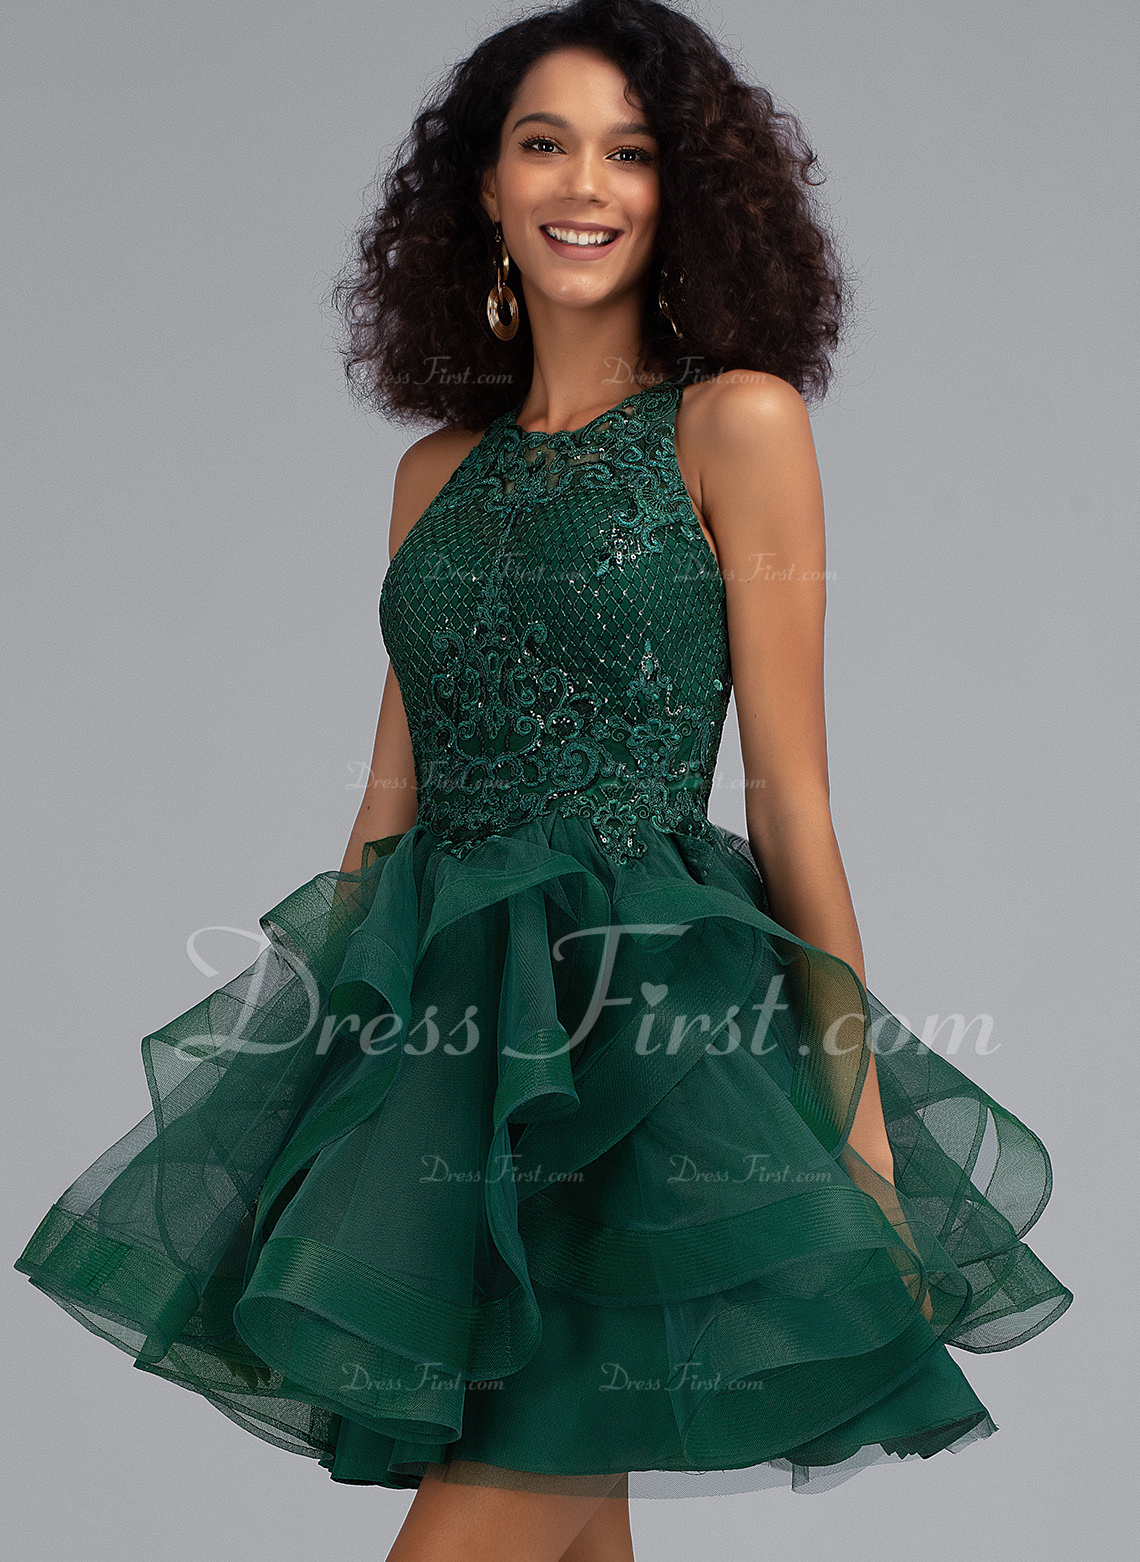 Ball-Gown/Princess Scoop Neck Short/Mini Tulle Homecoming Dress With Sequins